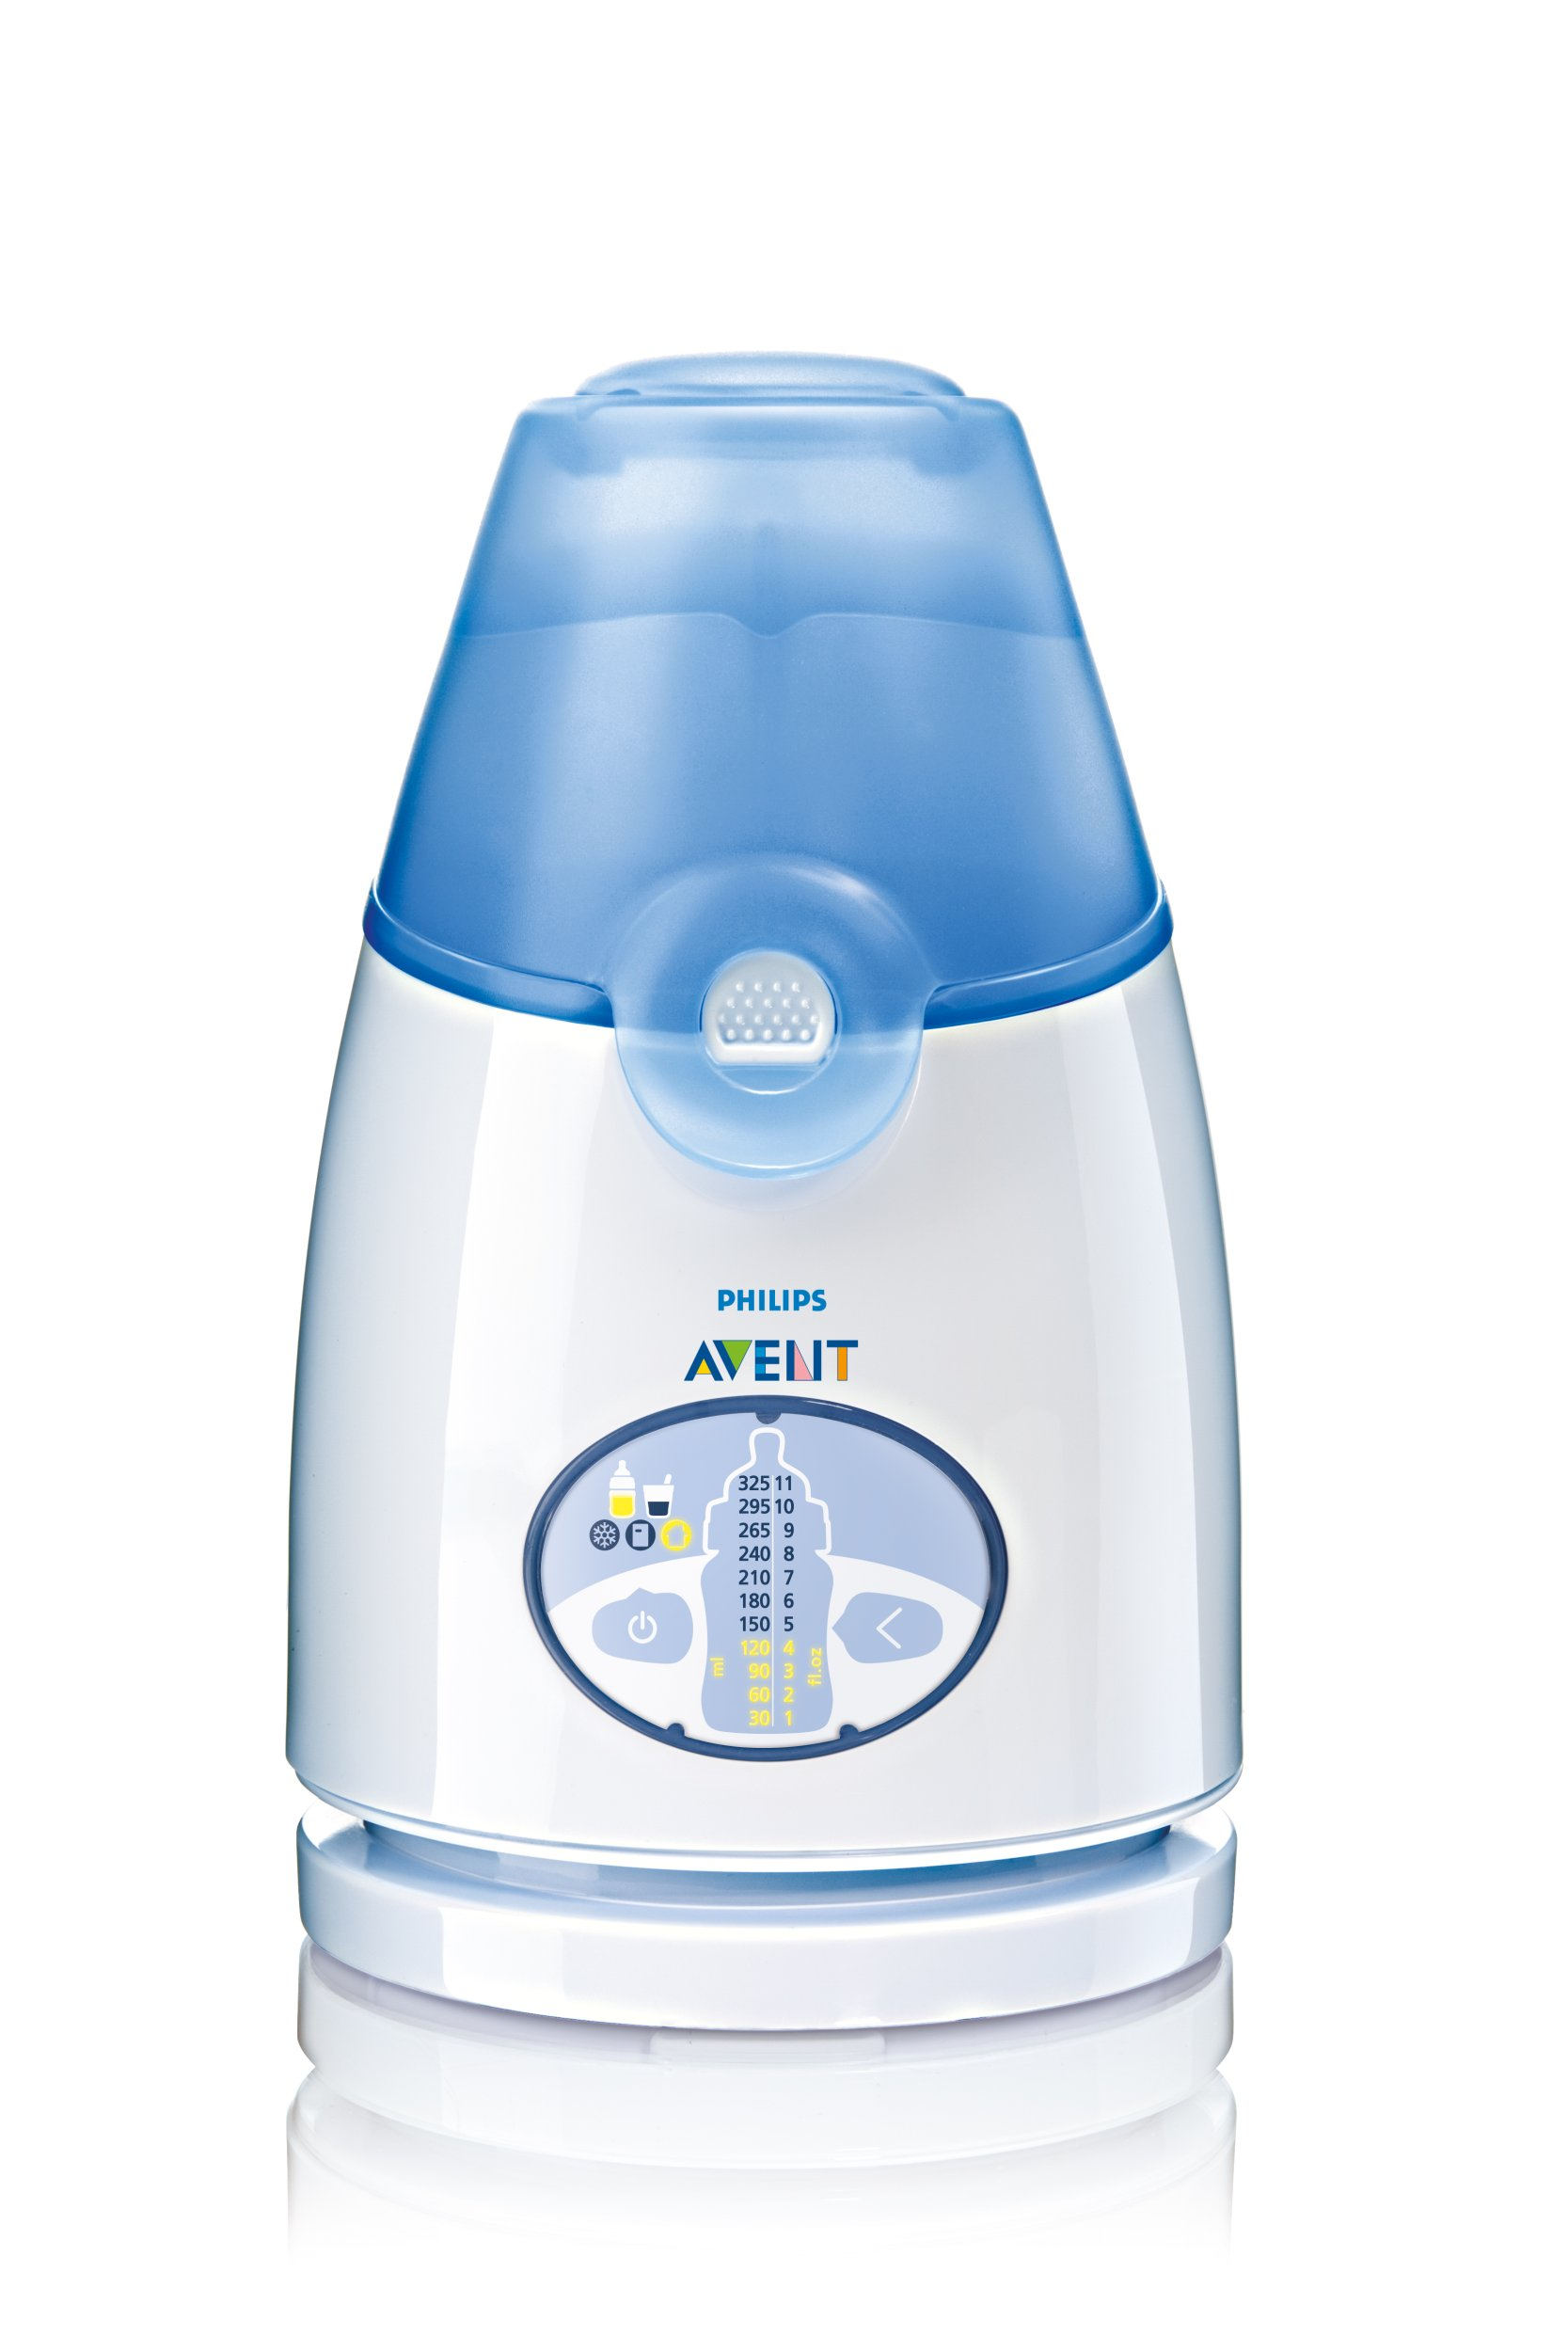 Philips AVENT iQ Food/Bottle Warmer